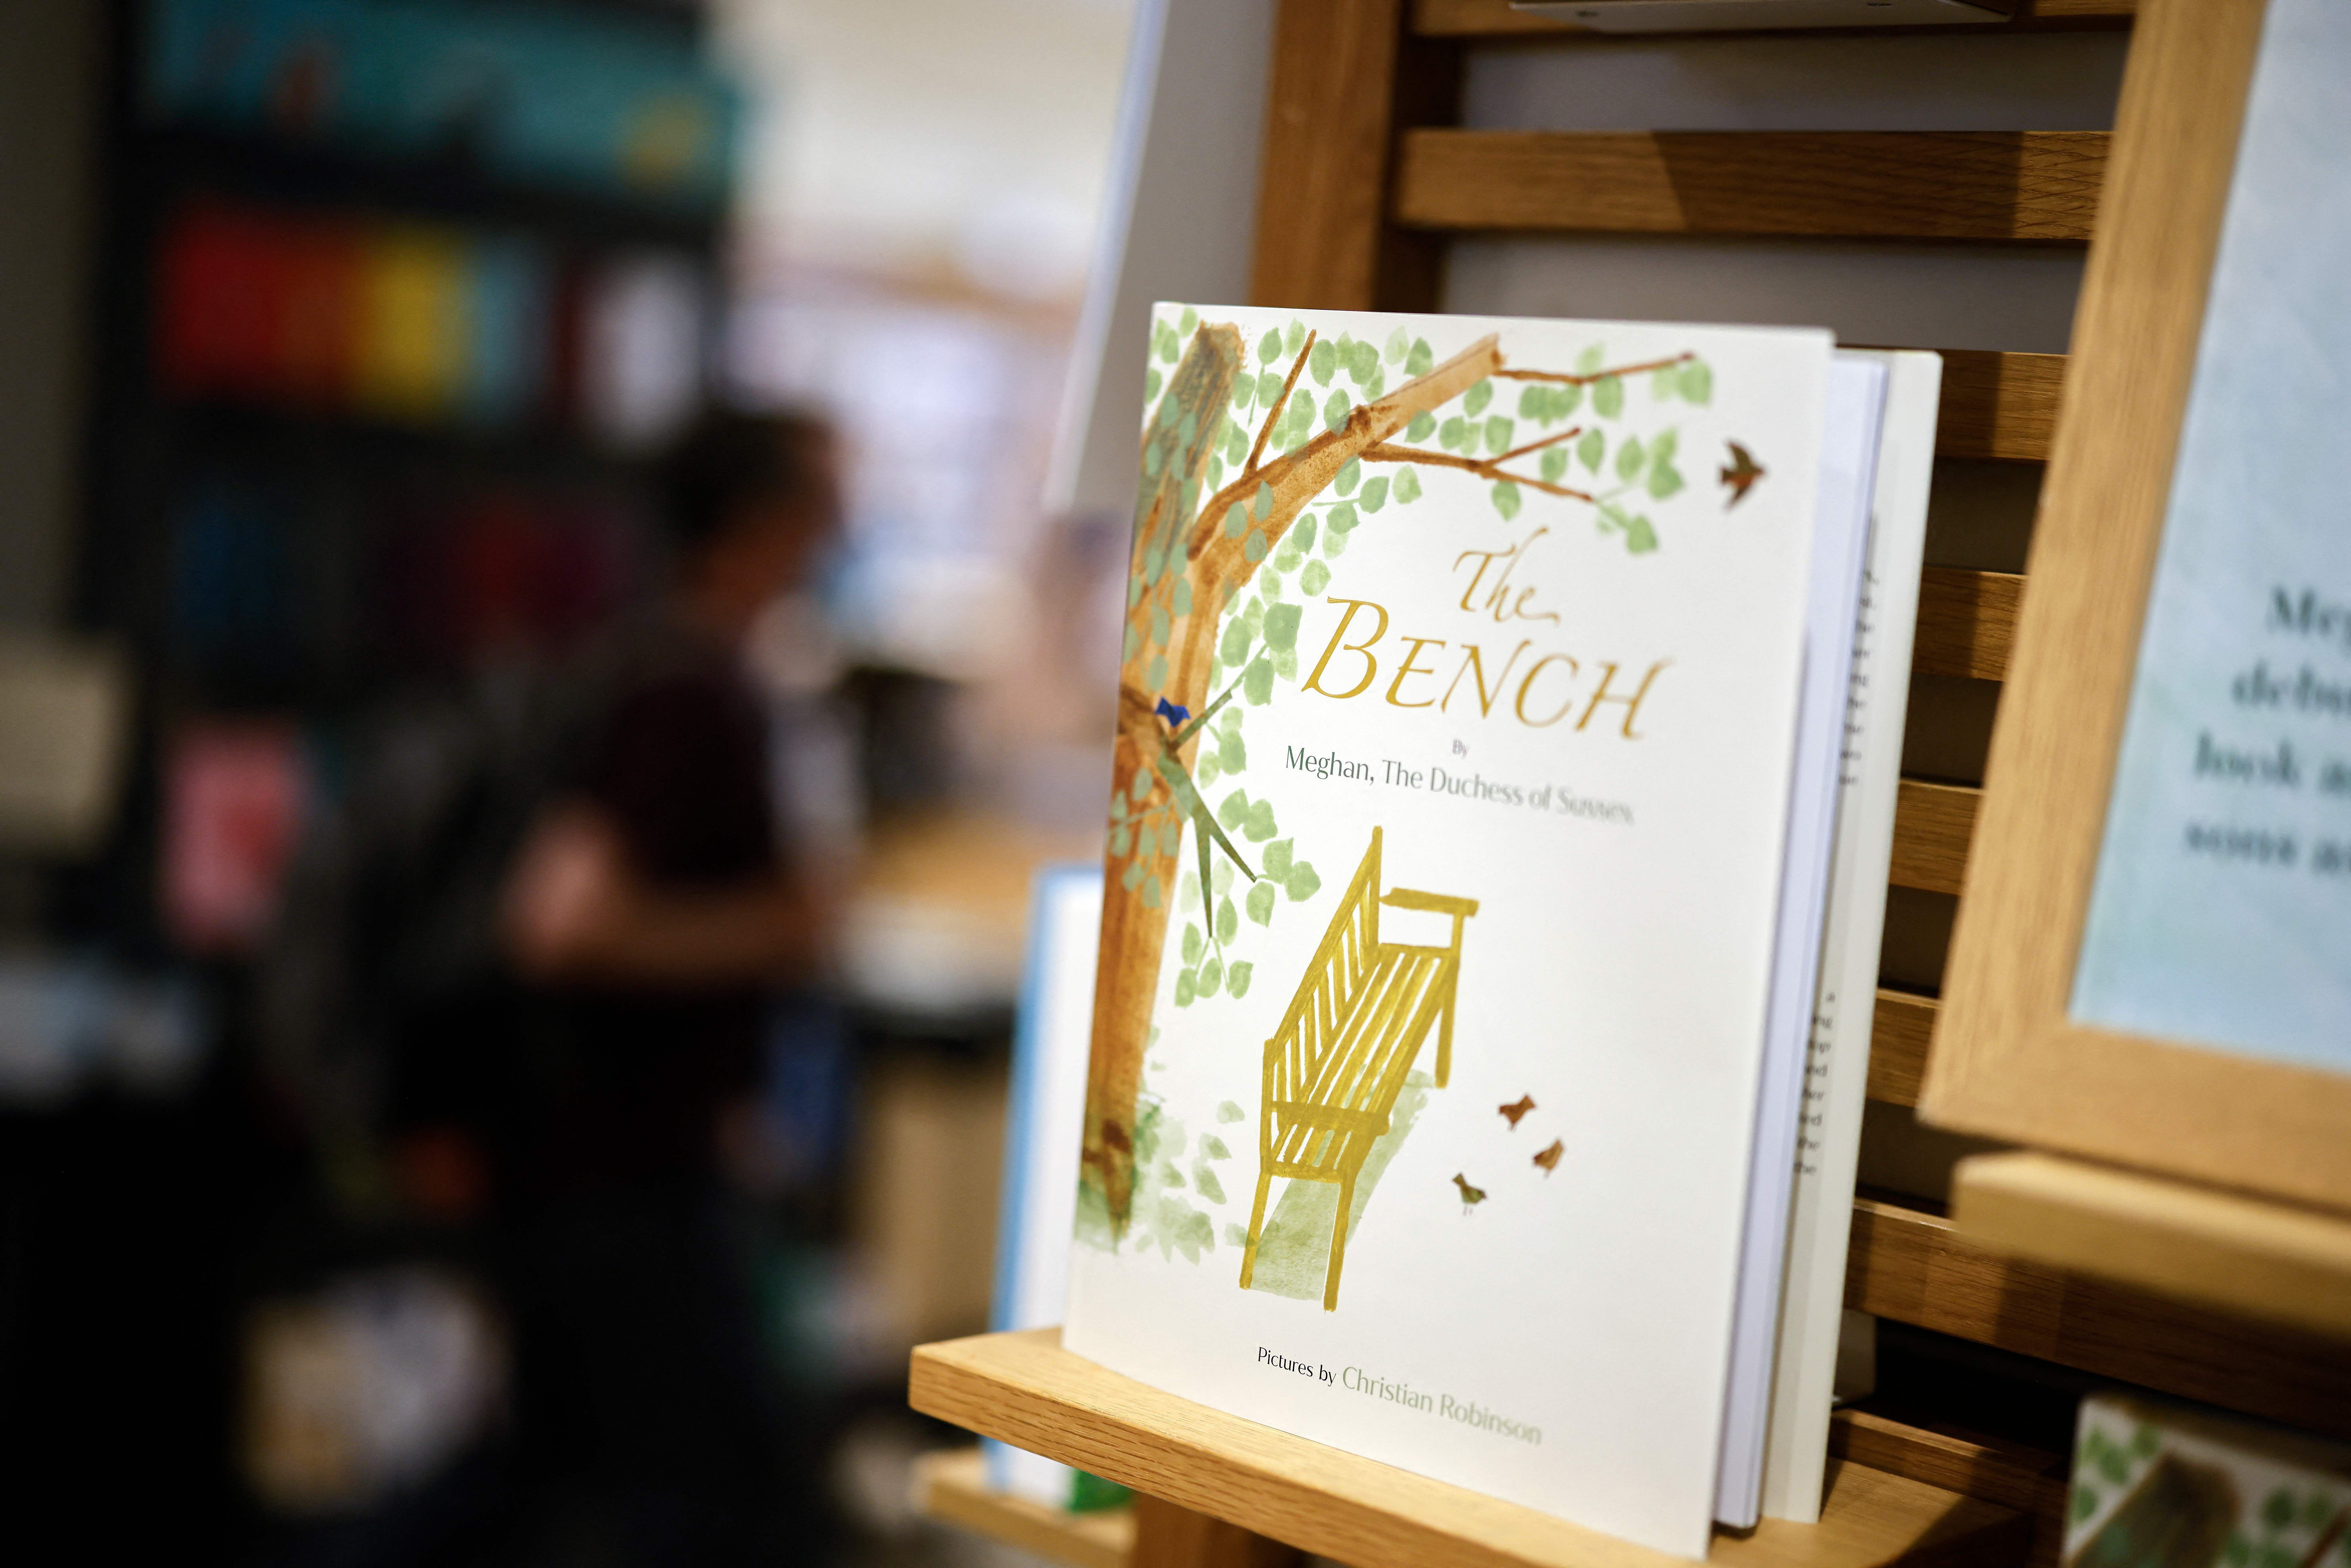 Children's book 'The Bench' by Meghan Markle on display in a bookshop in London on June 8, 2021, following its release   Photo: Getty Images